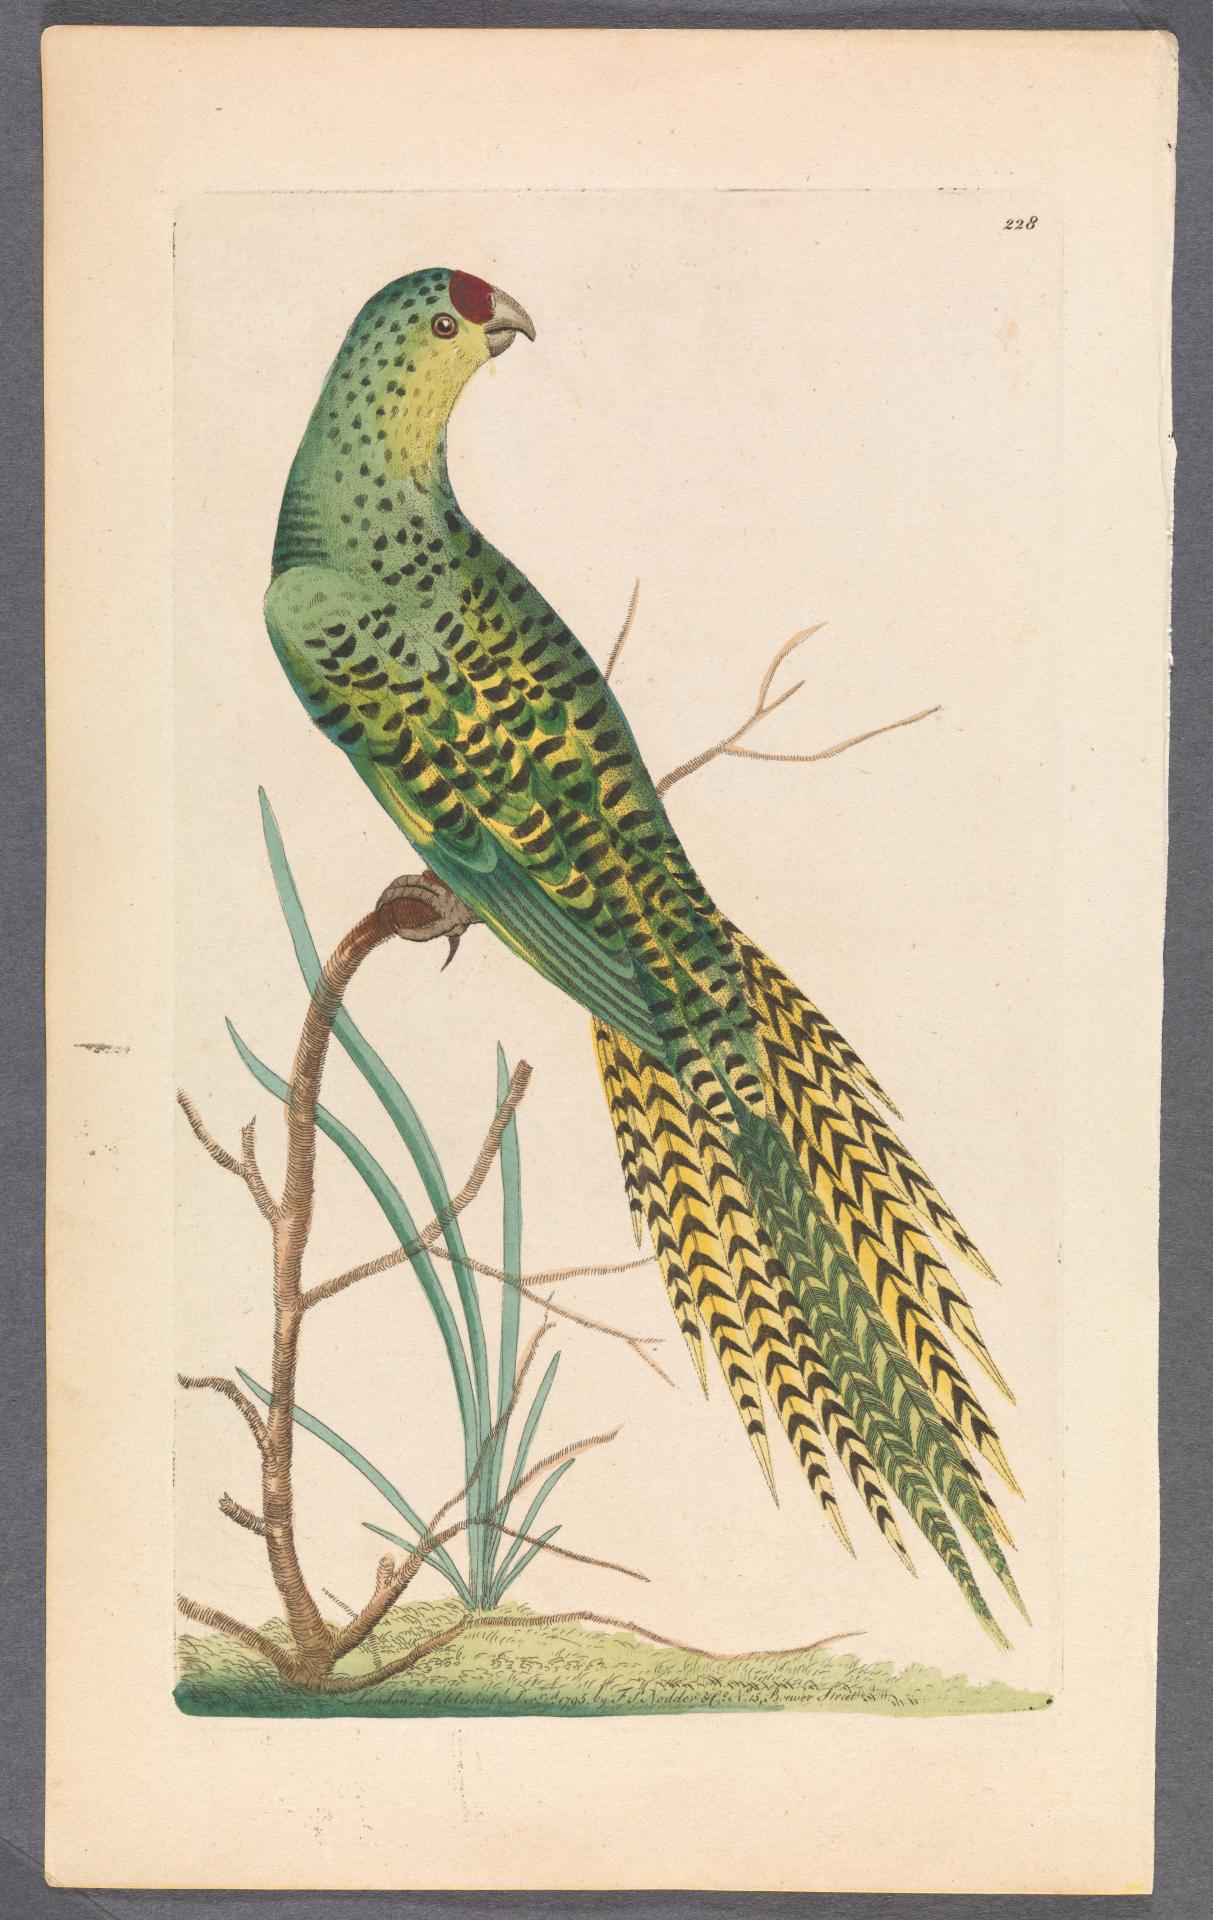 The Ground Parrot